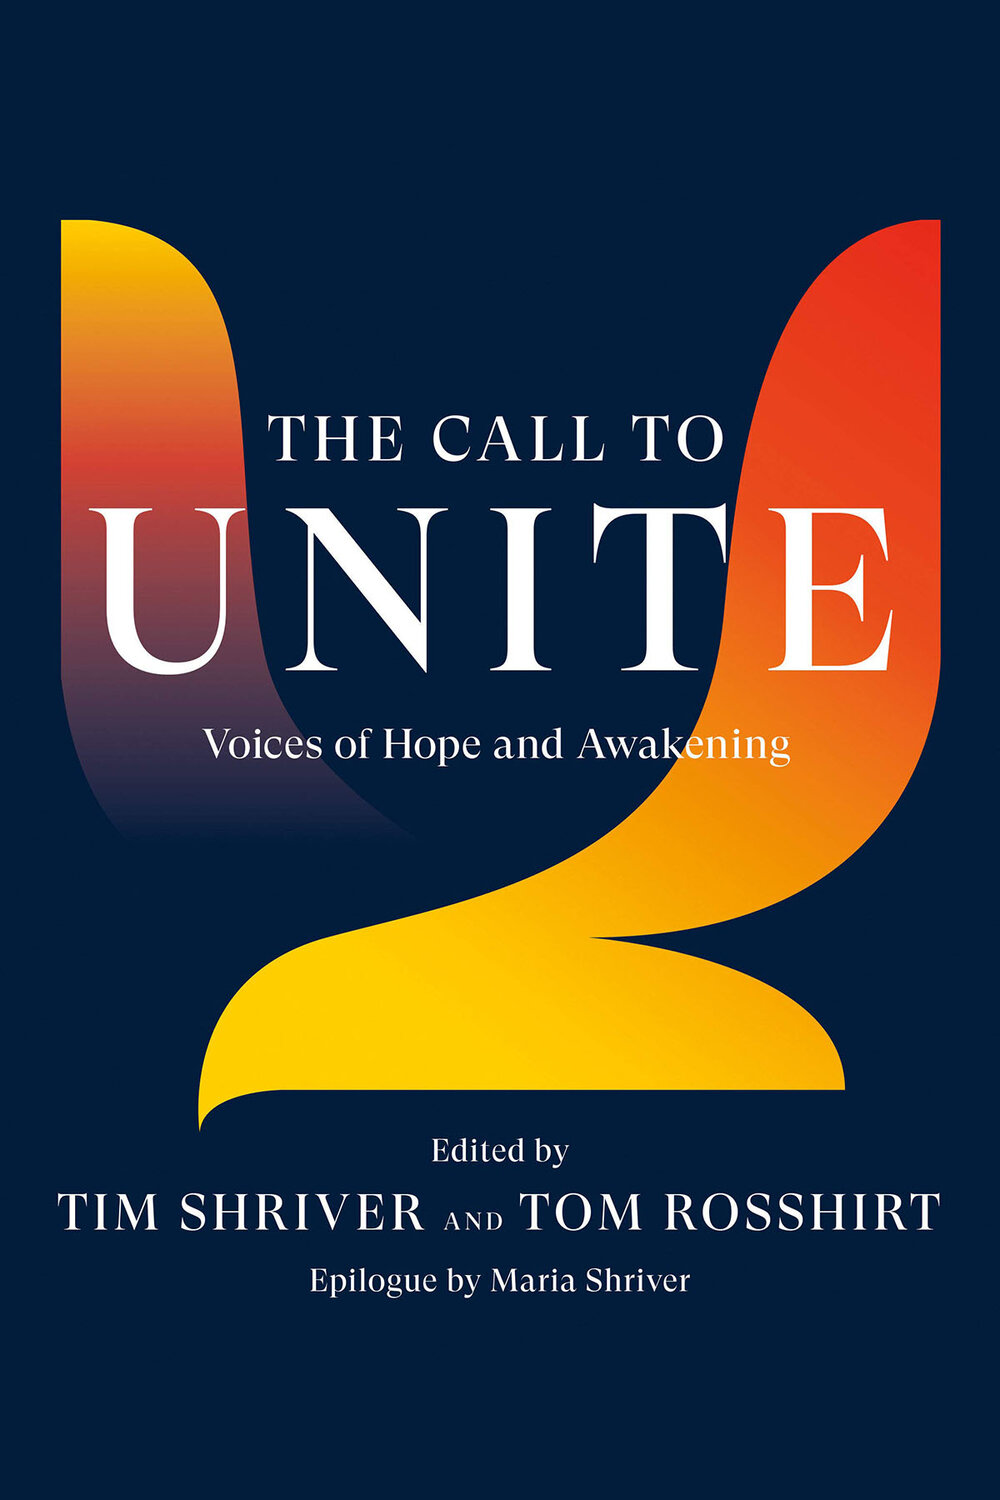 The Call to Unite: Voices of Hope and Awakening Edited by Tim Shriver and Tom Rosshirt